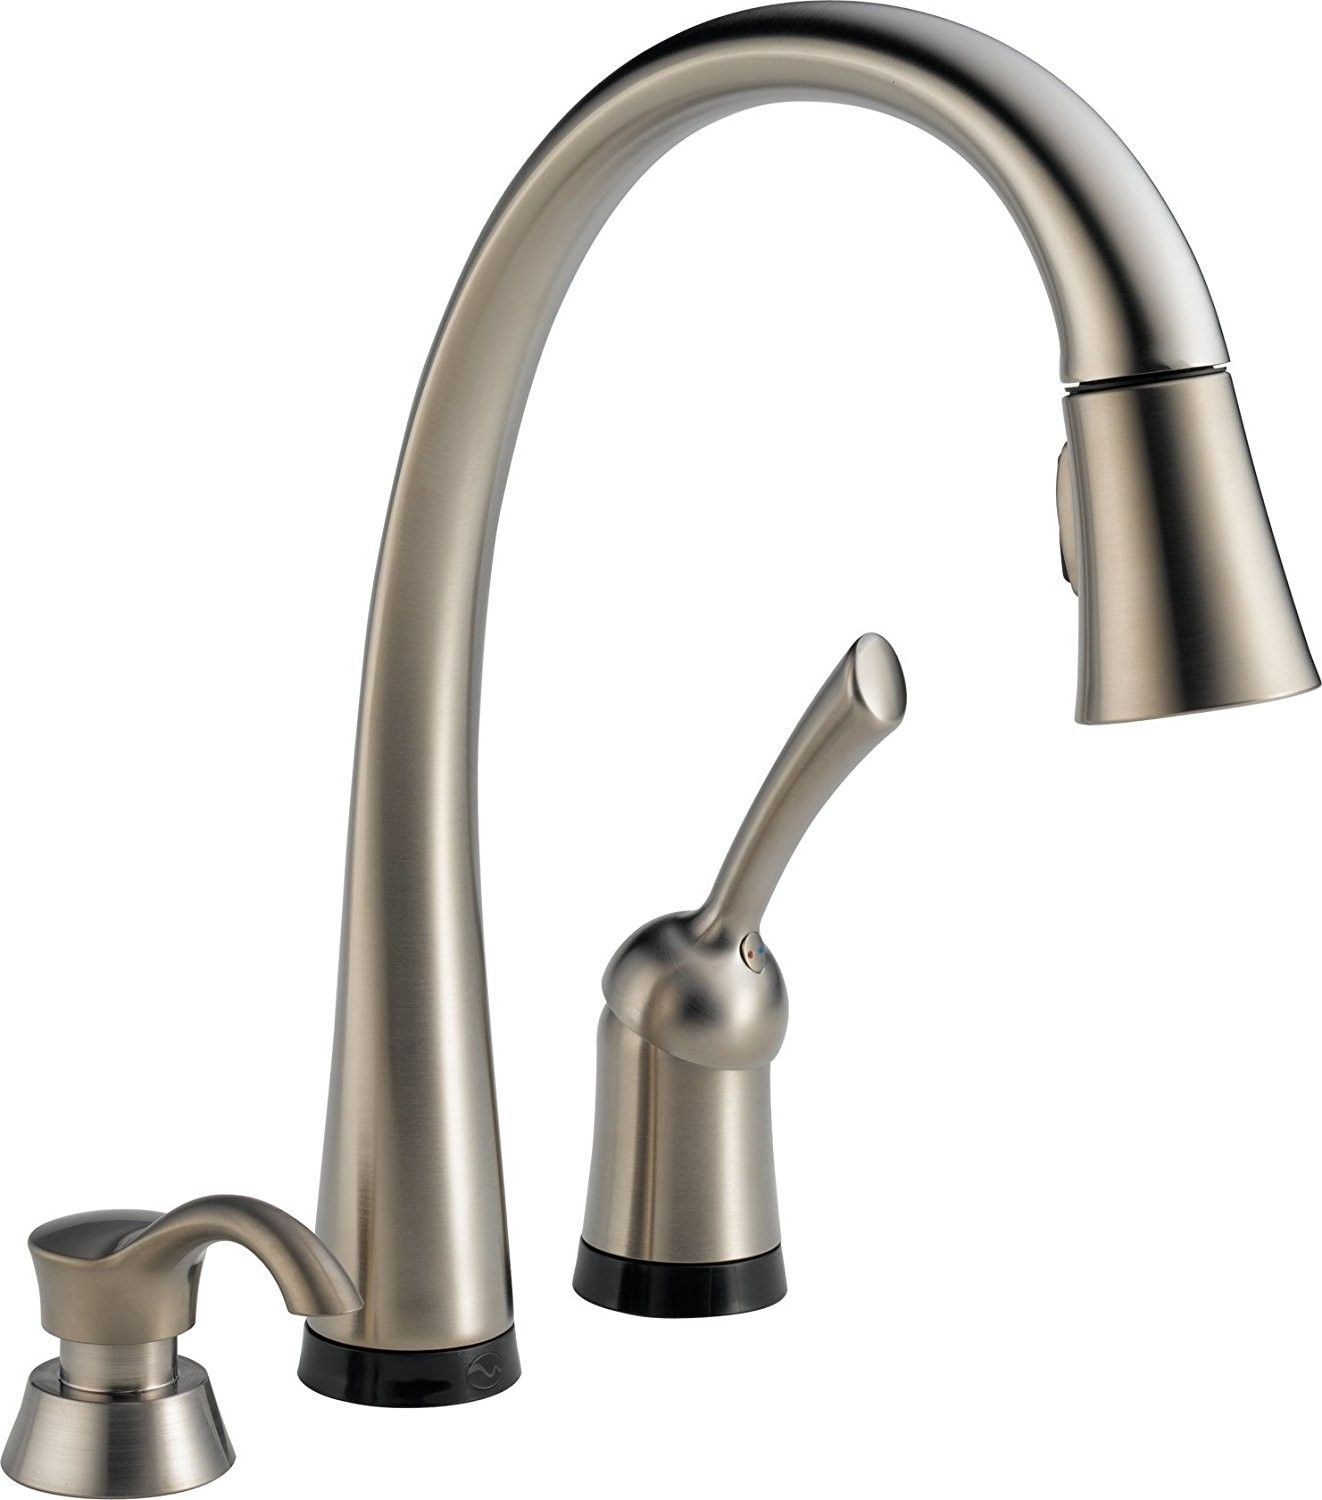 Pin By Home Furniture On Home Furniture One Kitchen Faucet